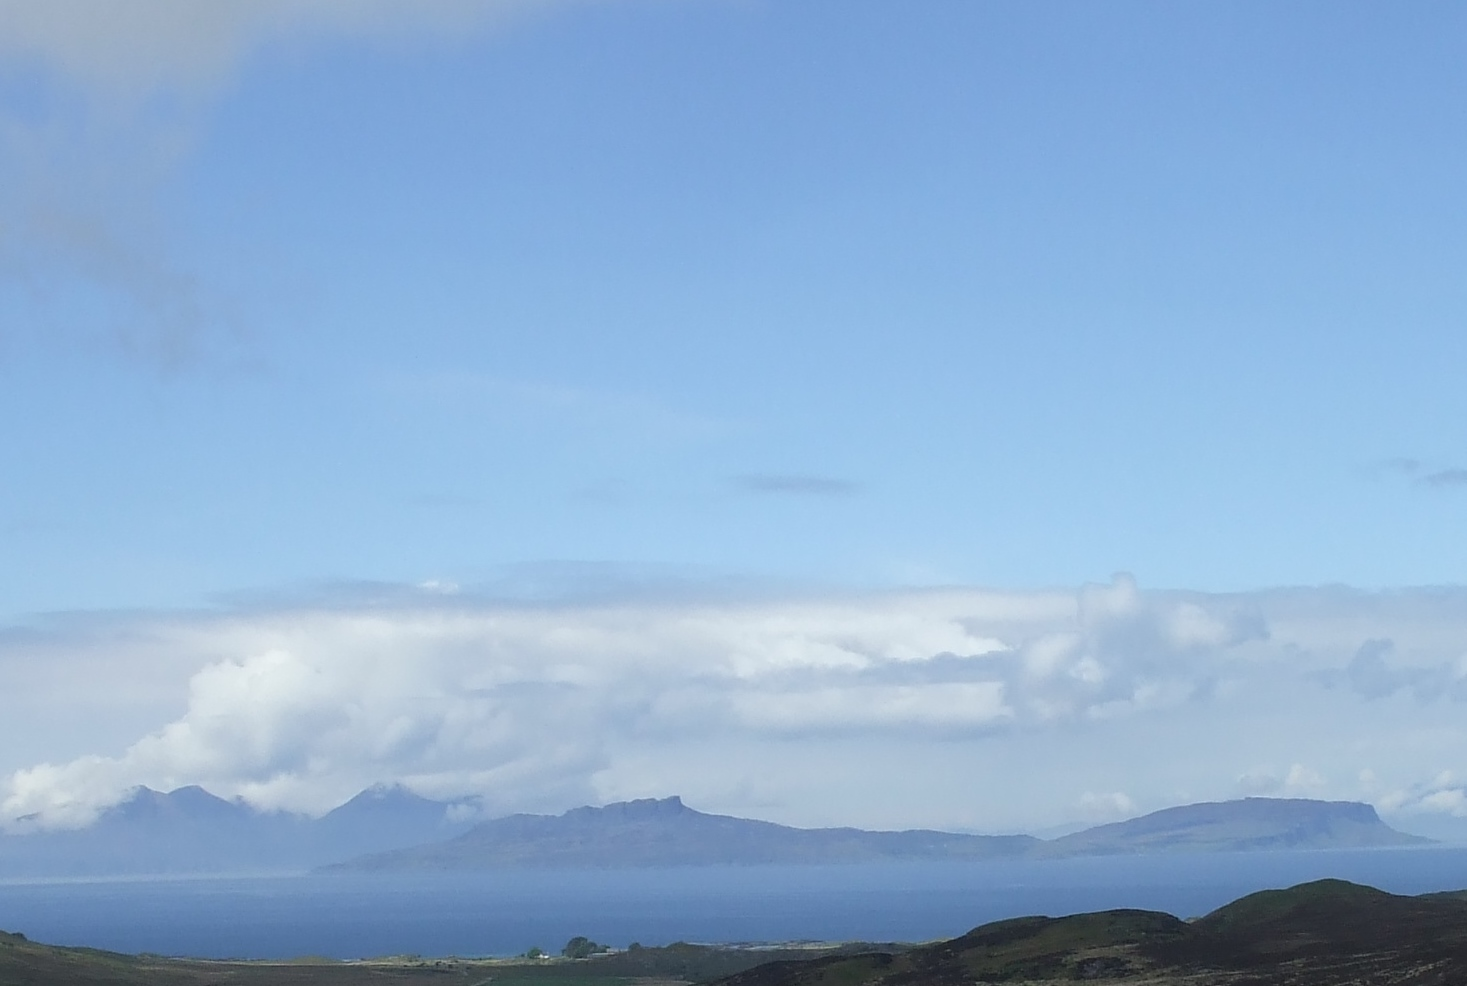 eigg from ardnamurchan 4/6/13 by sea penguin